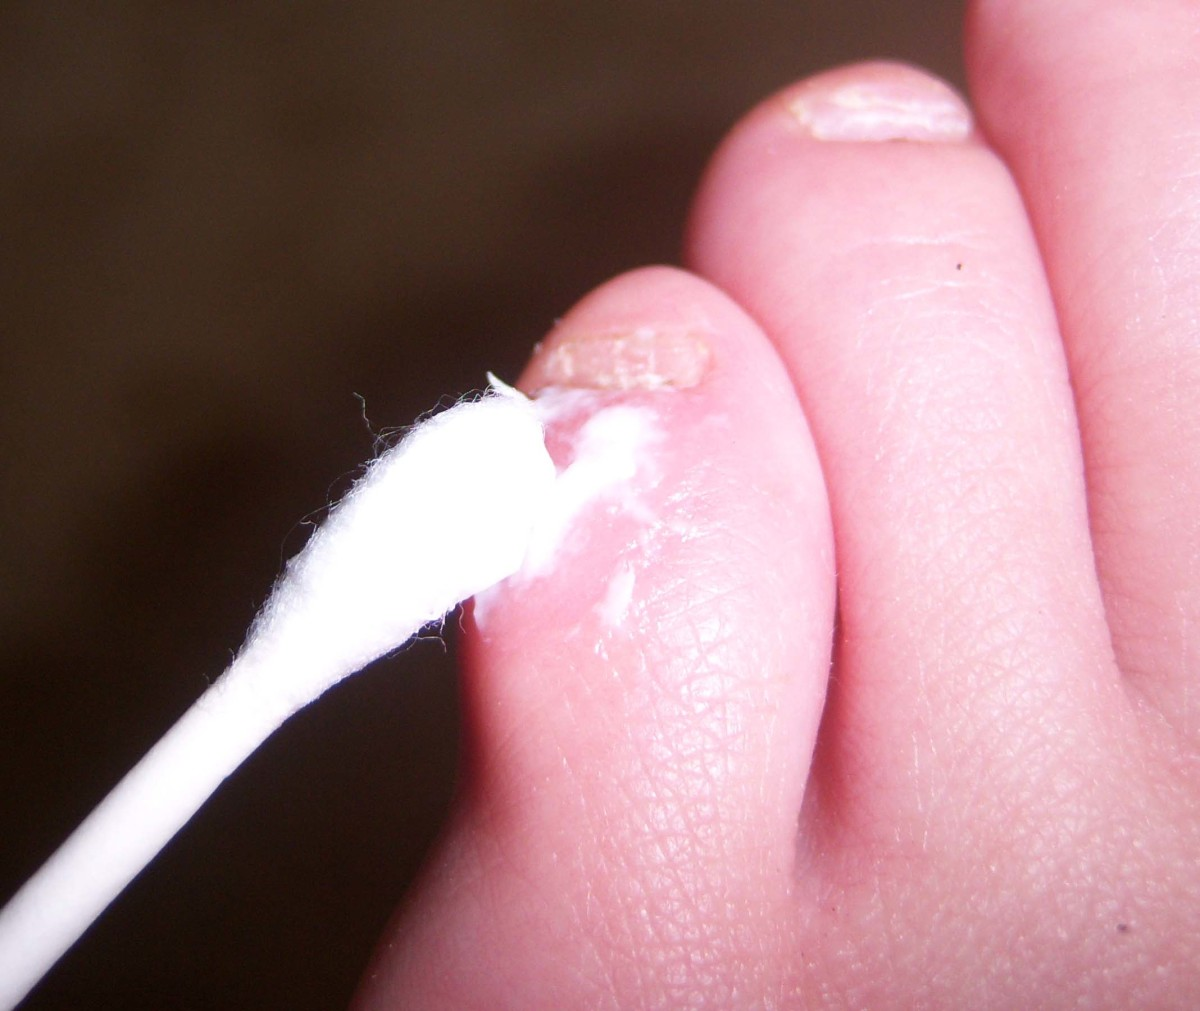 Applying antibacterial cream to the blister.